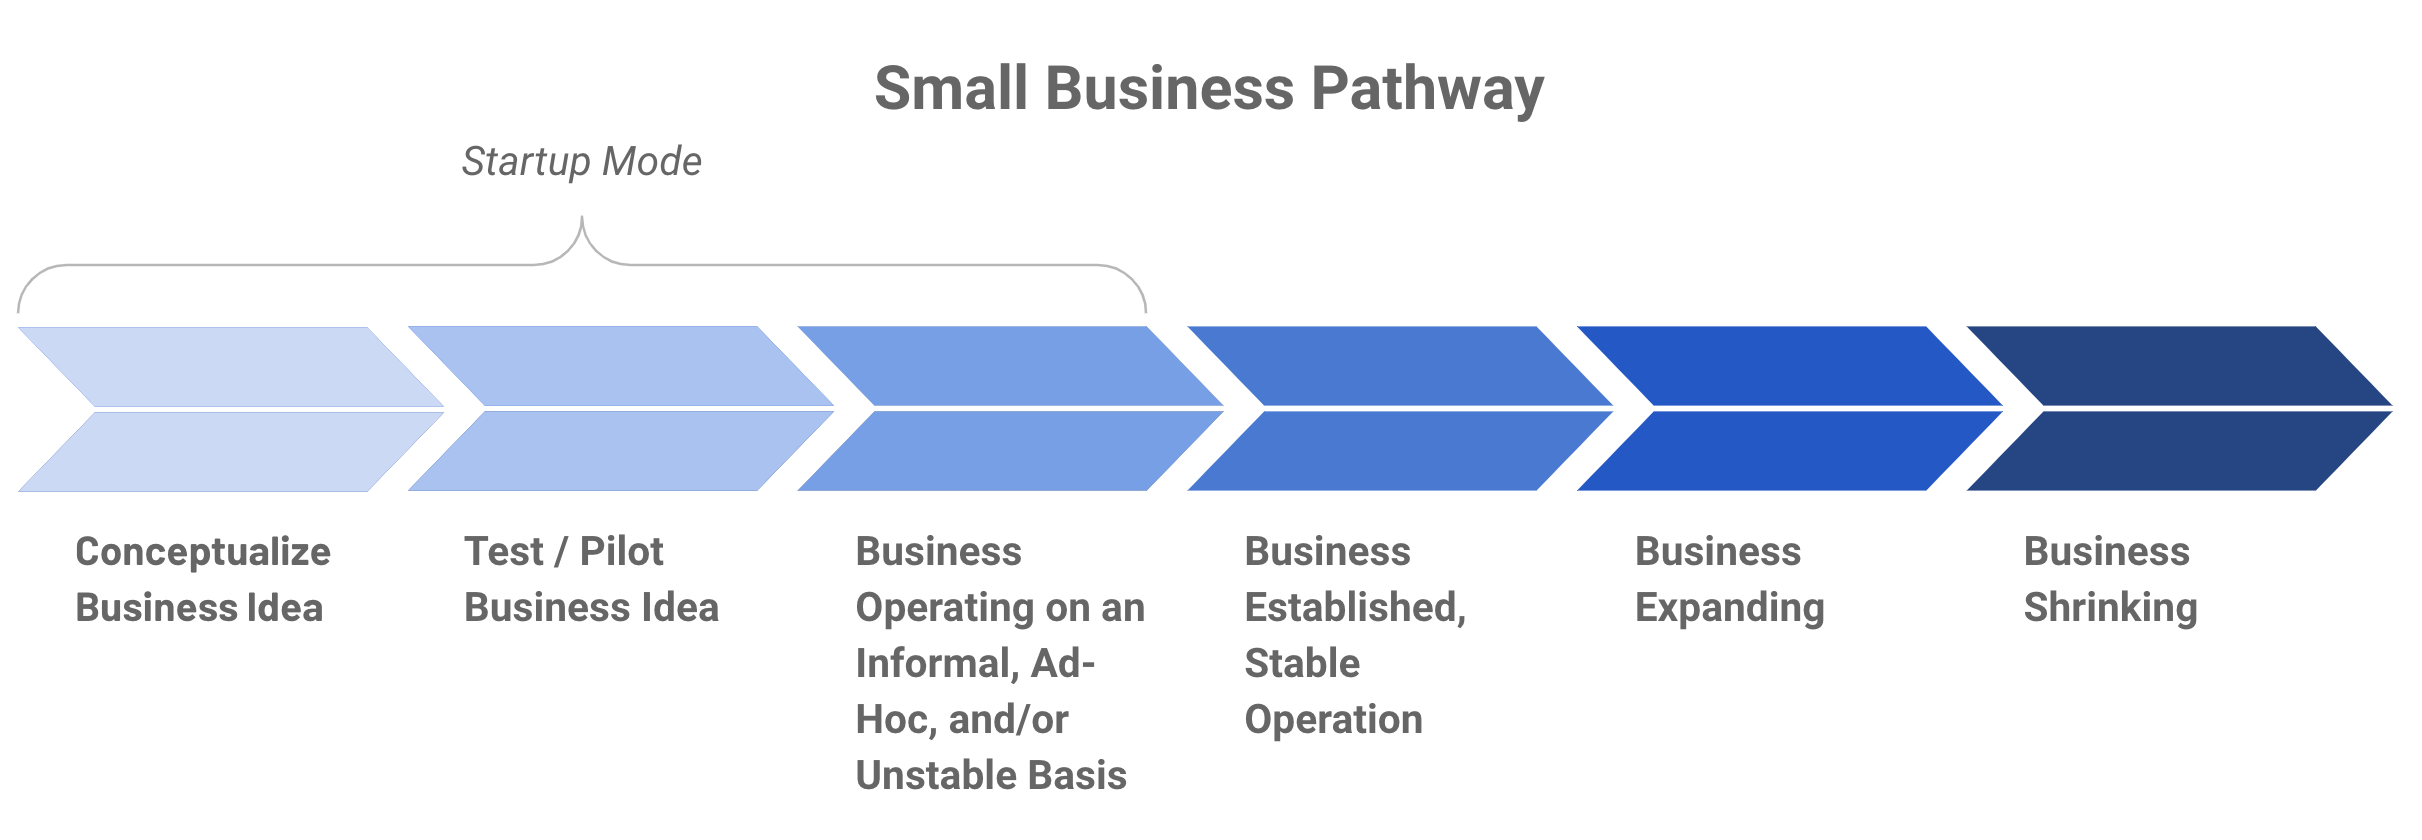 Diagram showing six stages for growing a small business